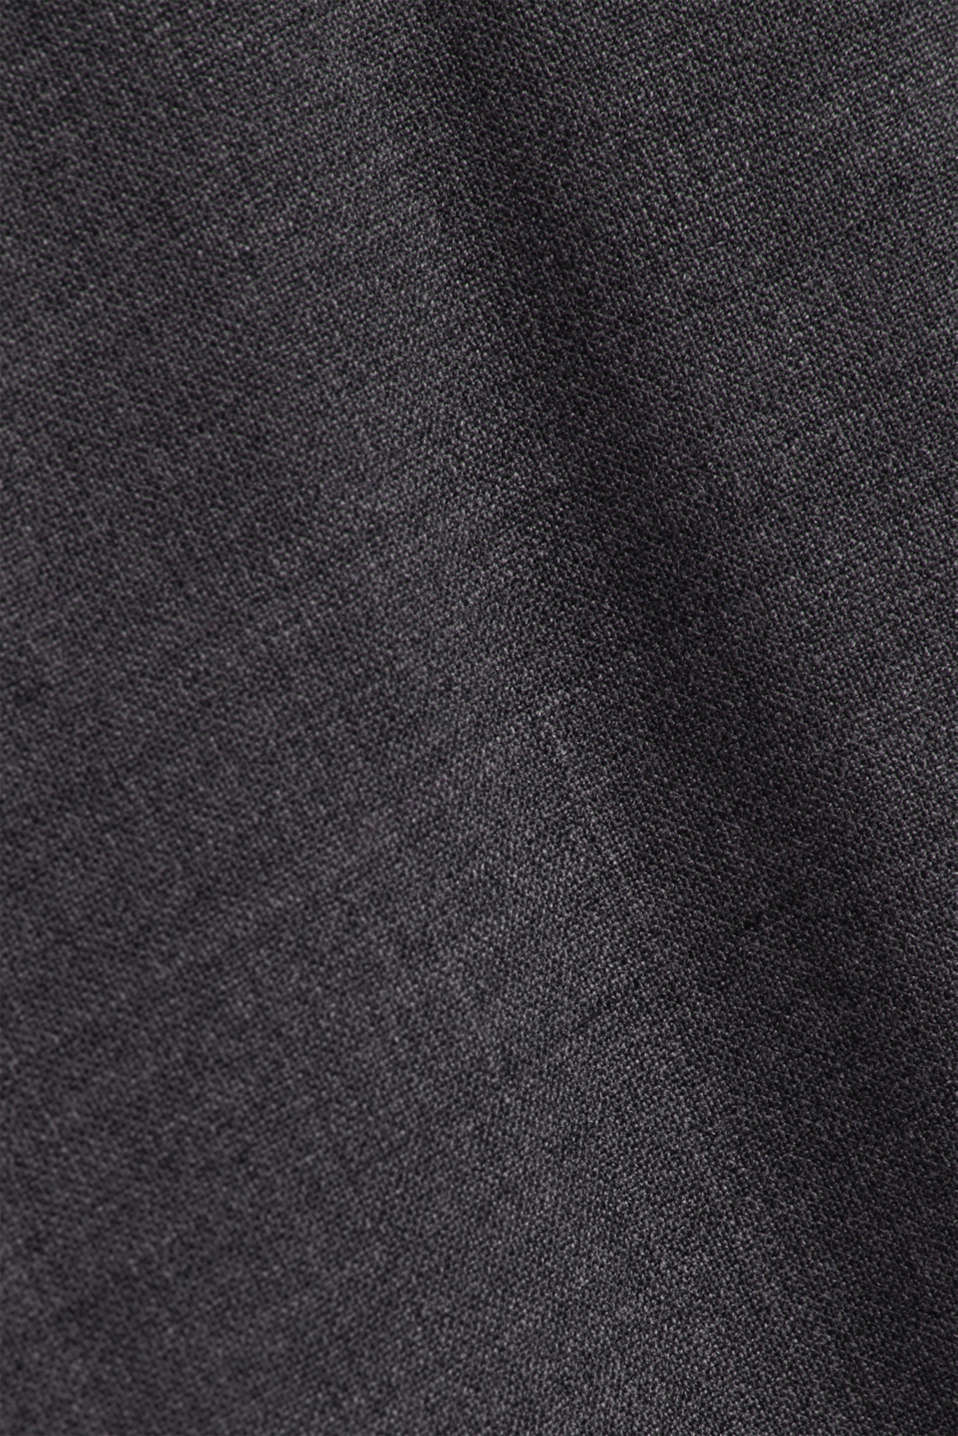 ACTIVE SUIT BLACK trousers made of blended wool, DARK GREY 5, detail image number 4